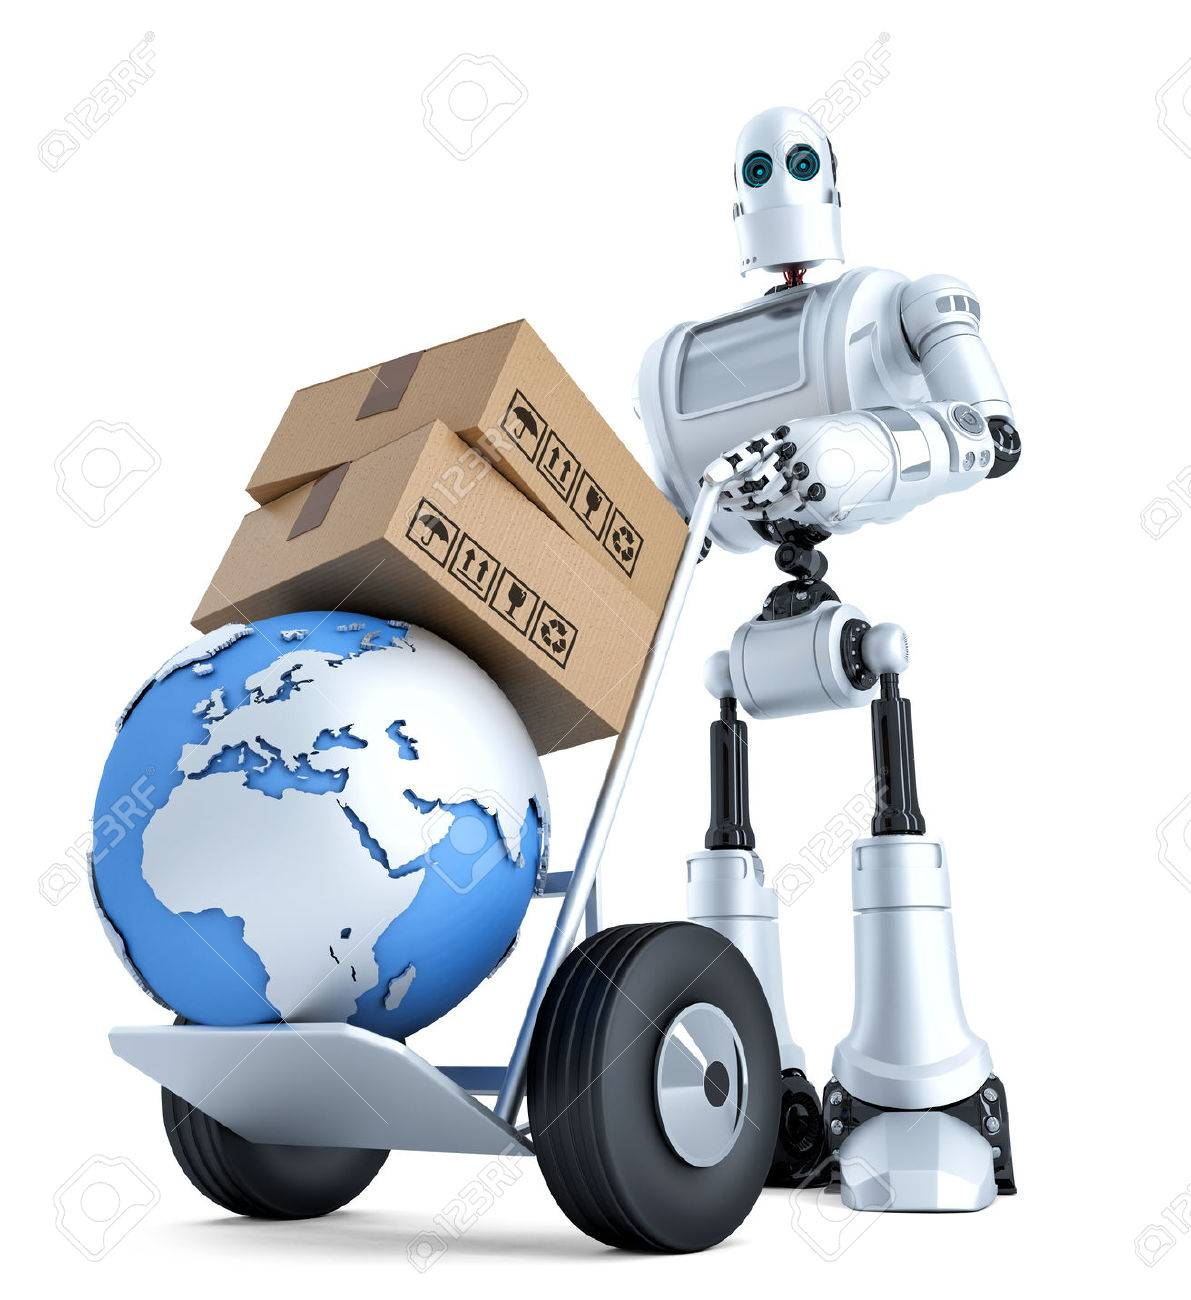 Robot with hand truck and stack of boxes. Isolated over white. Standard-Bild - 43214744